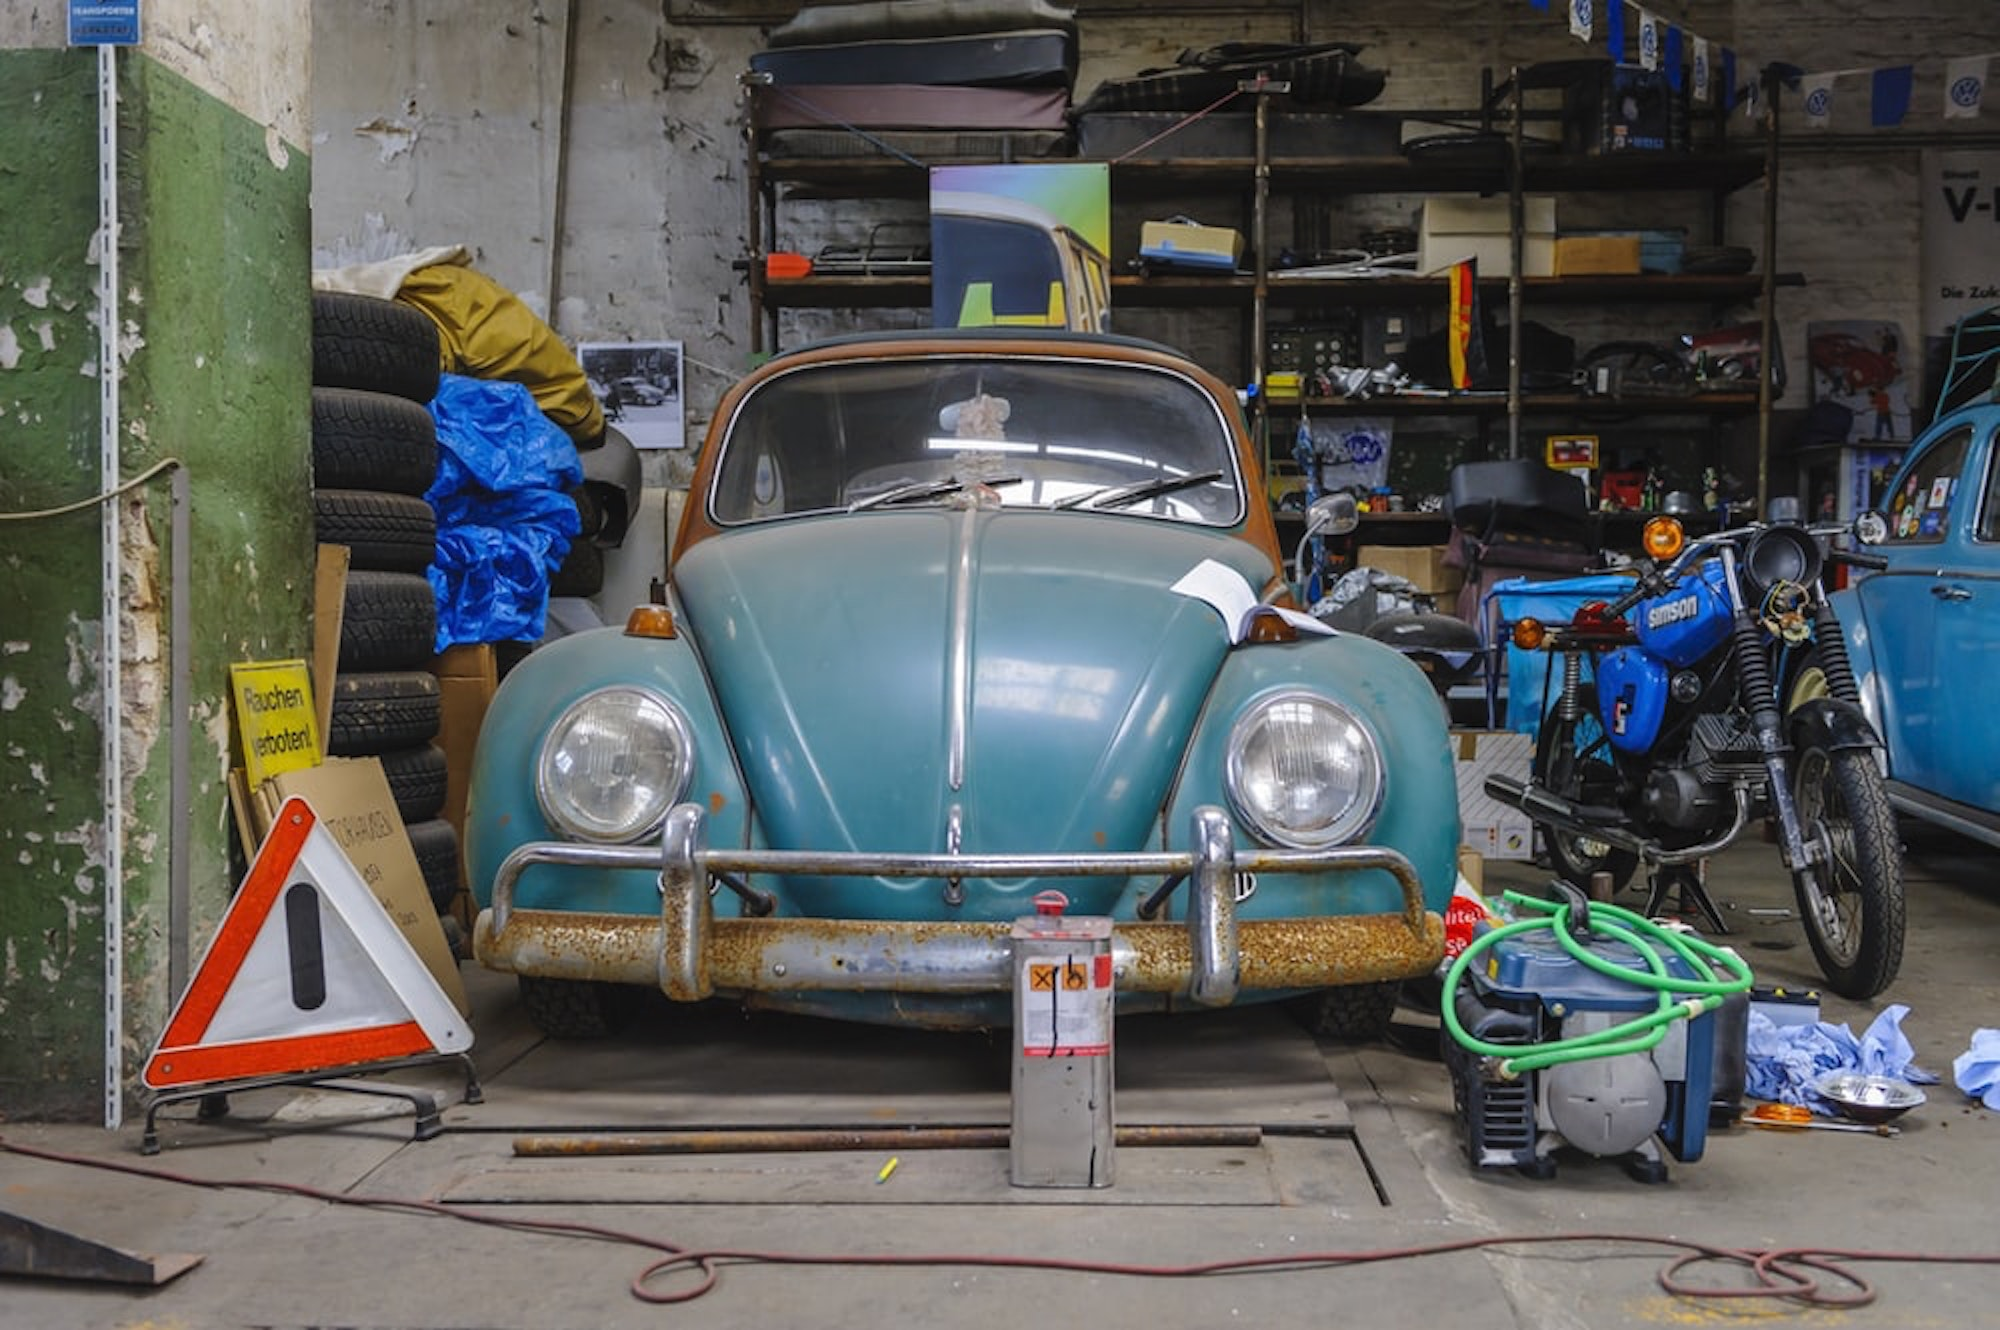 9 Reasons Why A Good Photoshoot Is Needed To Sell Your Junk Cars